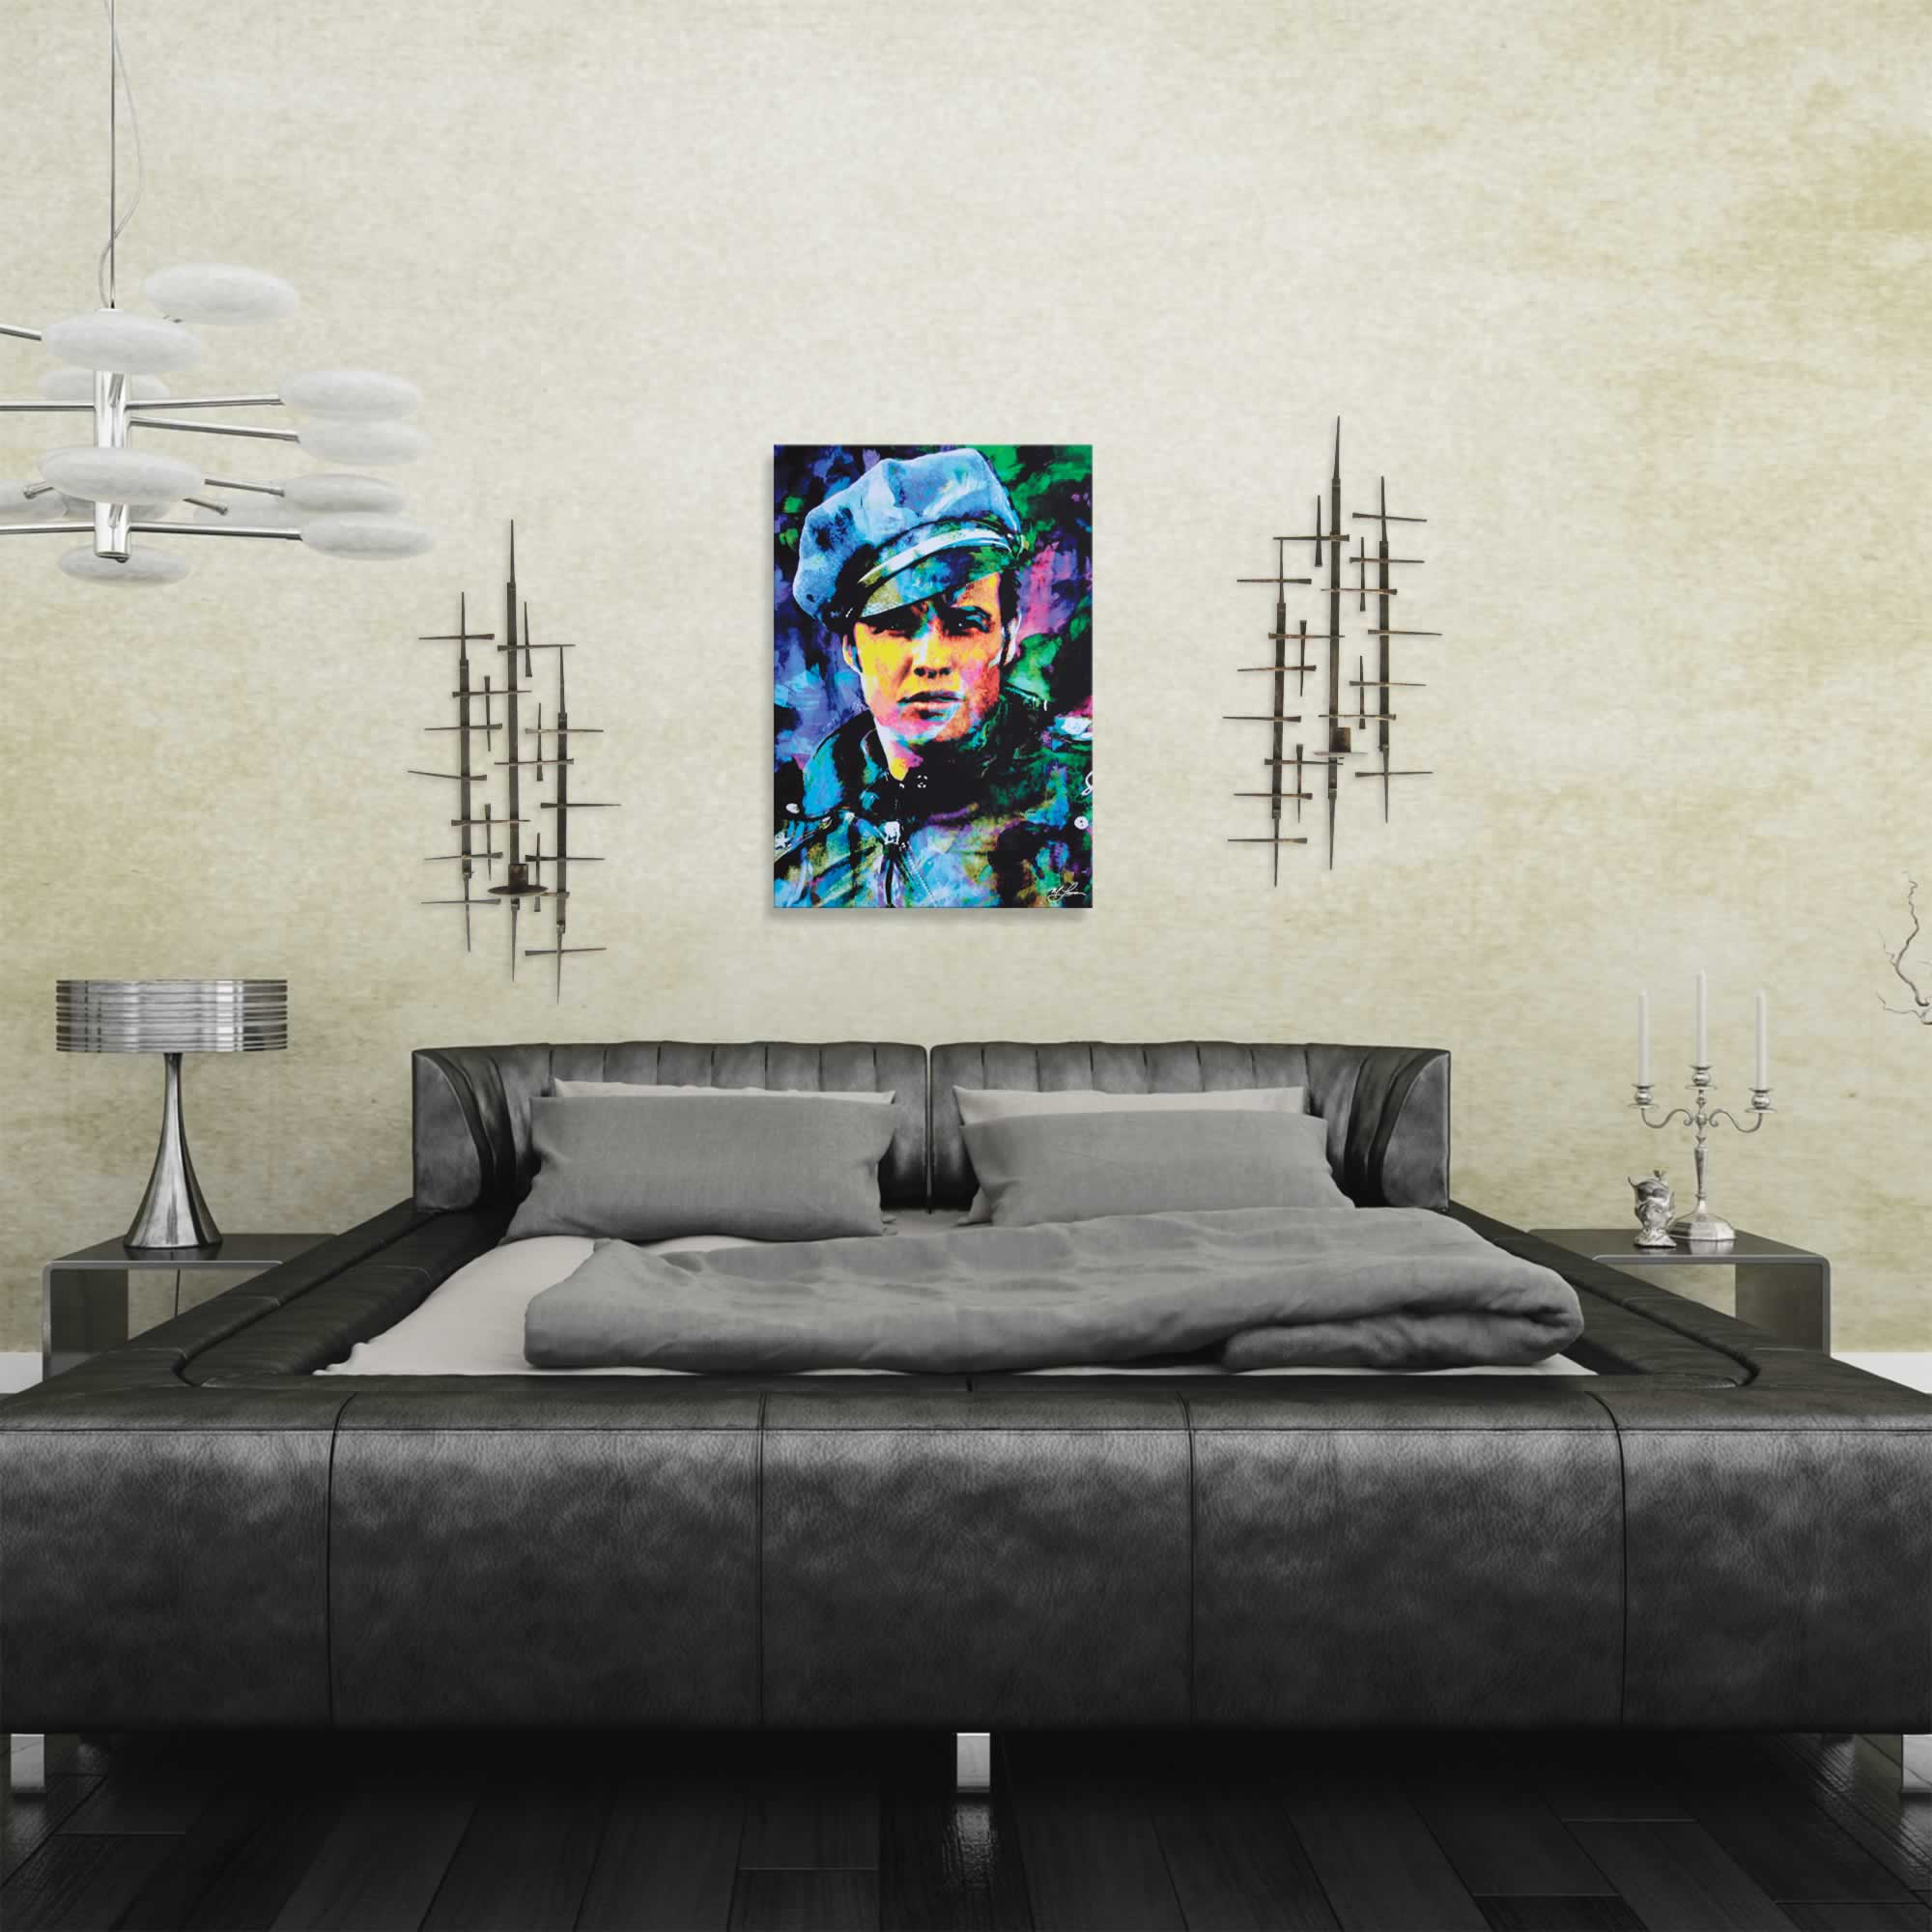 Marlon Brando Whadda Ya Got | Pop Art Painting by Mark Lewis, Signed & Numbered Limited Edition - ML0027